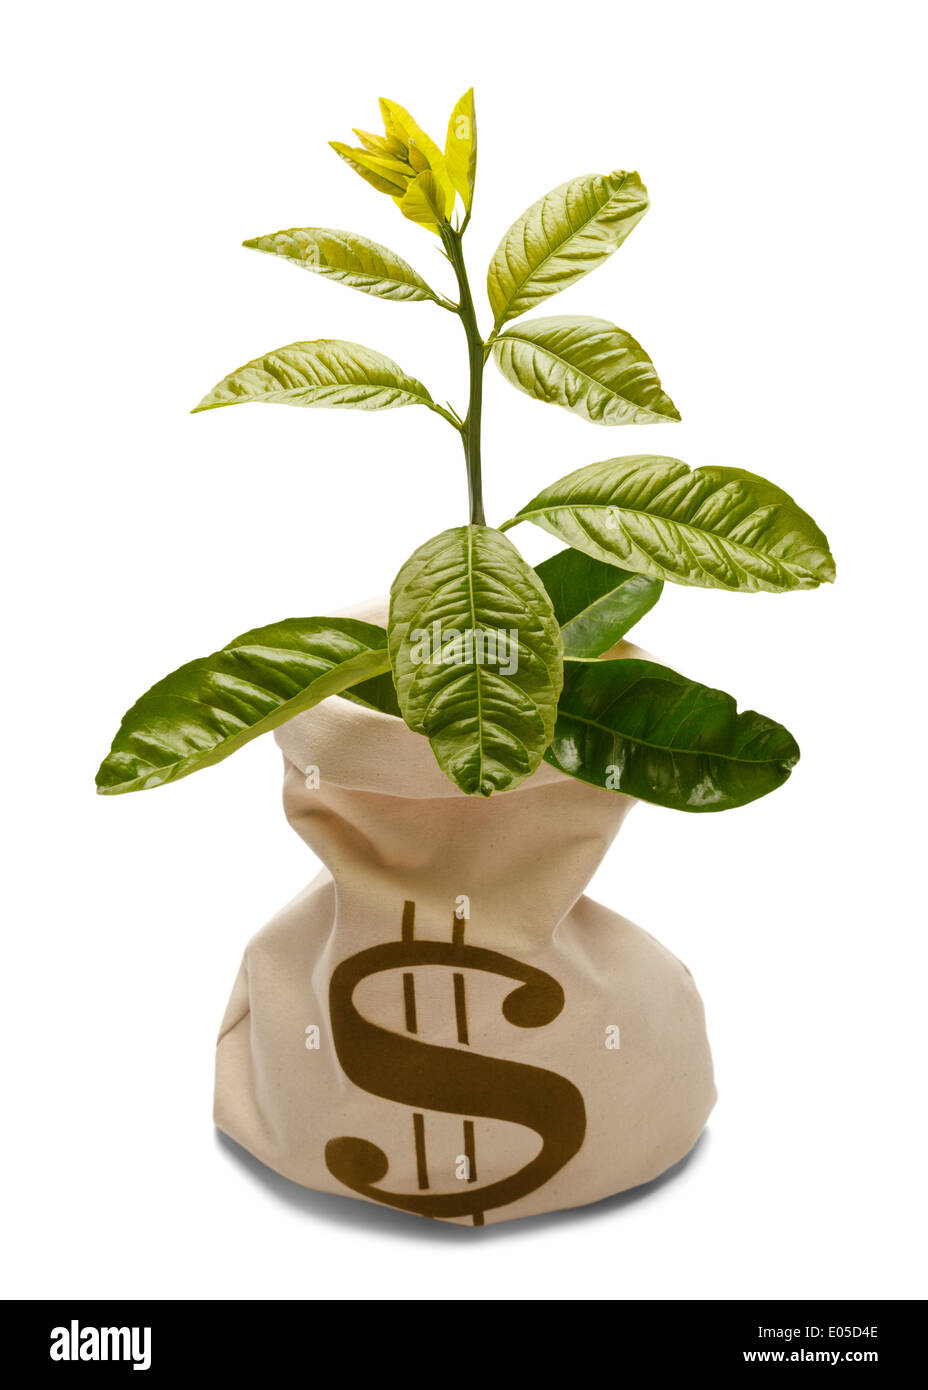 Tree growing out of money bank bag isolated on white. - Stock Image